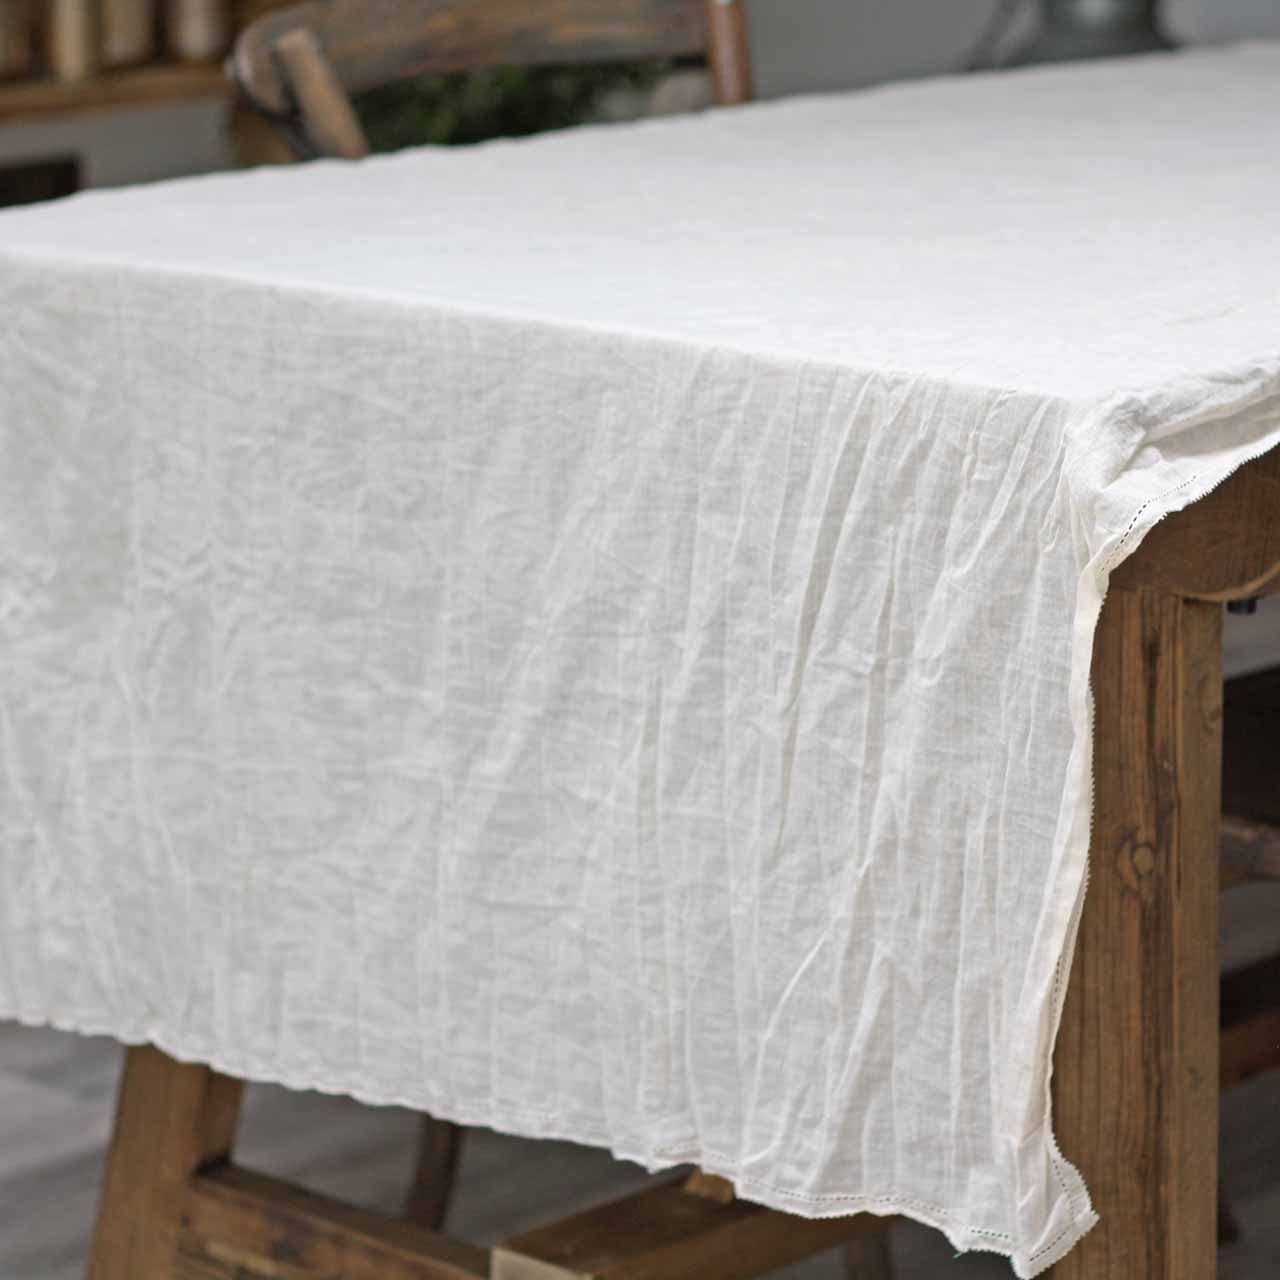 7678f29282 Cream crumpled wedding table cloth available from The Wedding of my Dreams